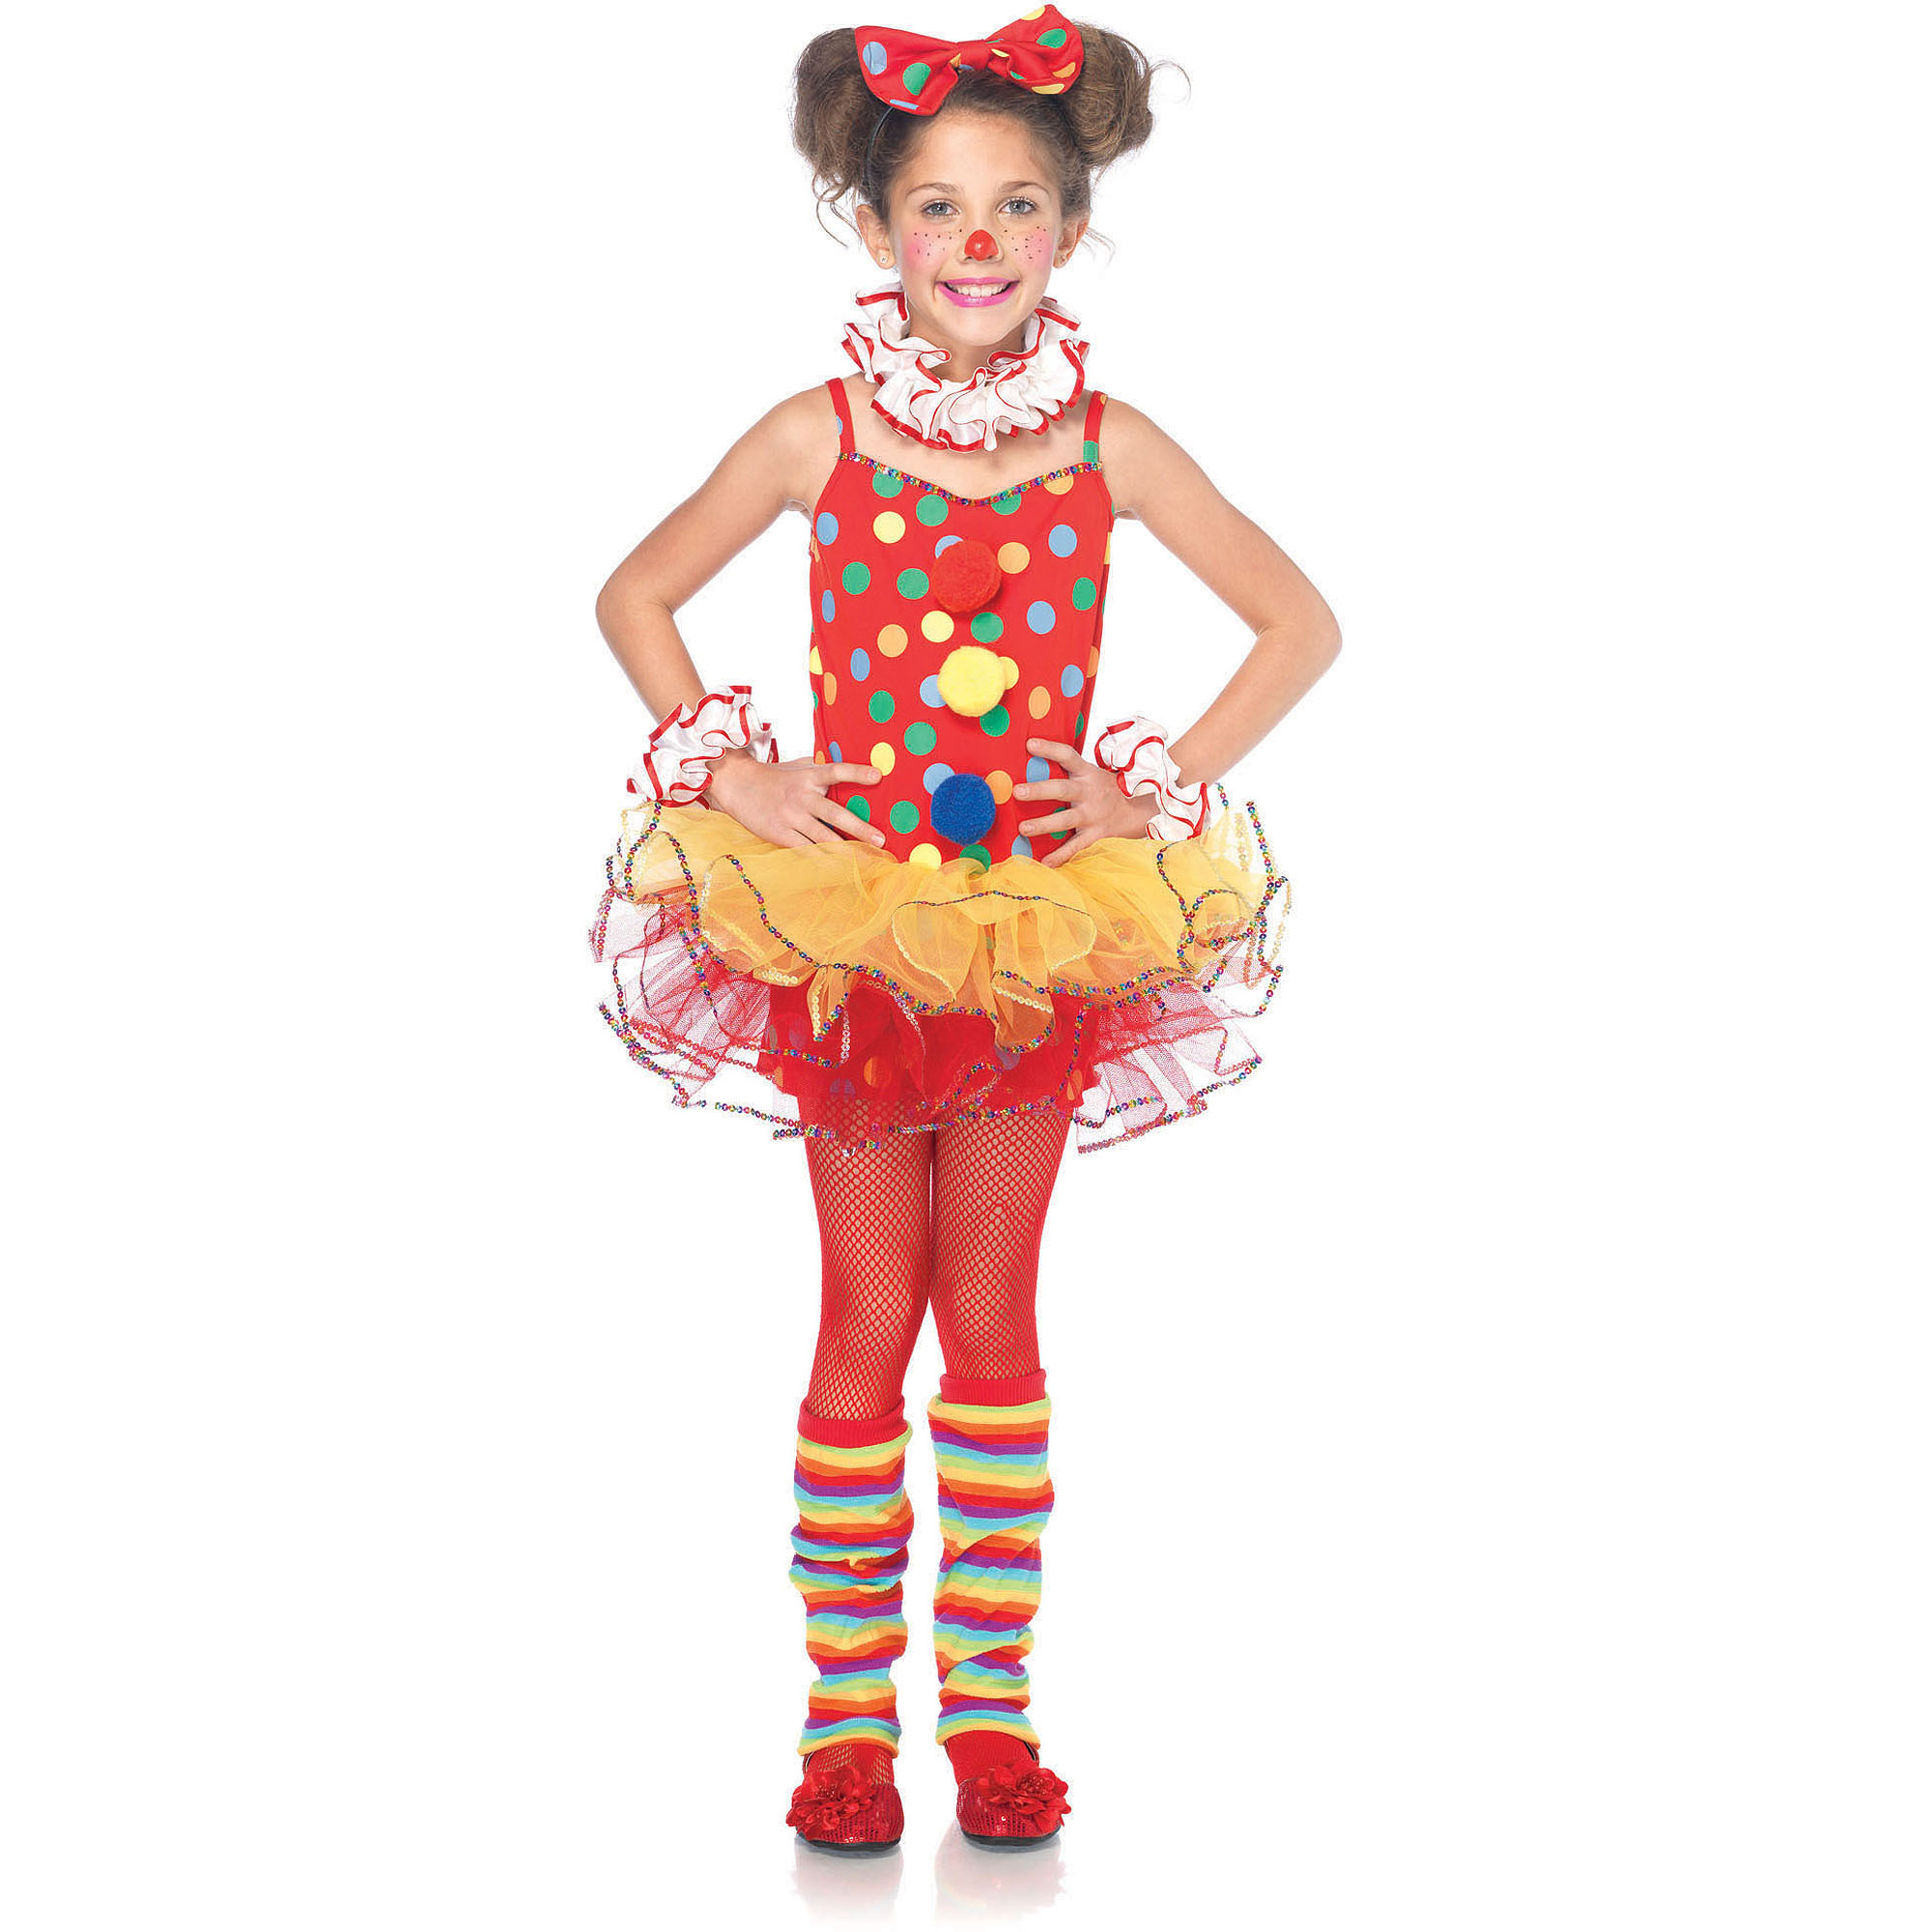 Leg Avenue Circus Clown Child Halloween Costume, Size M